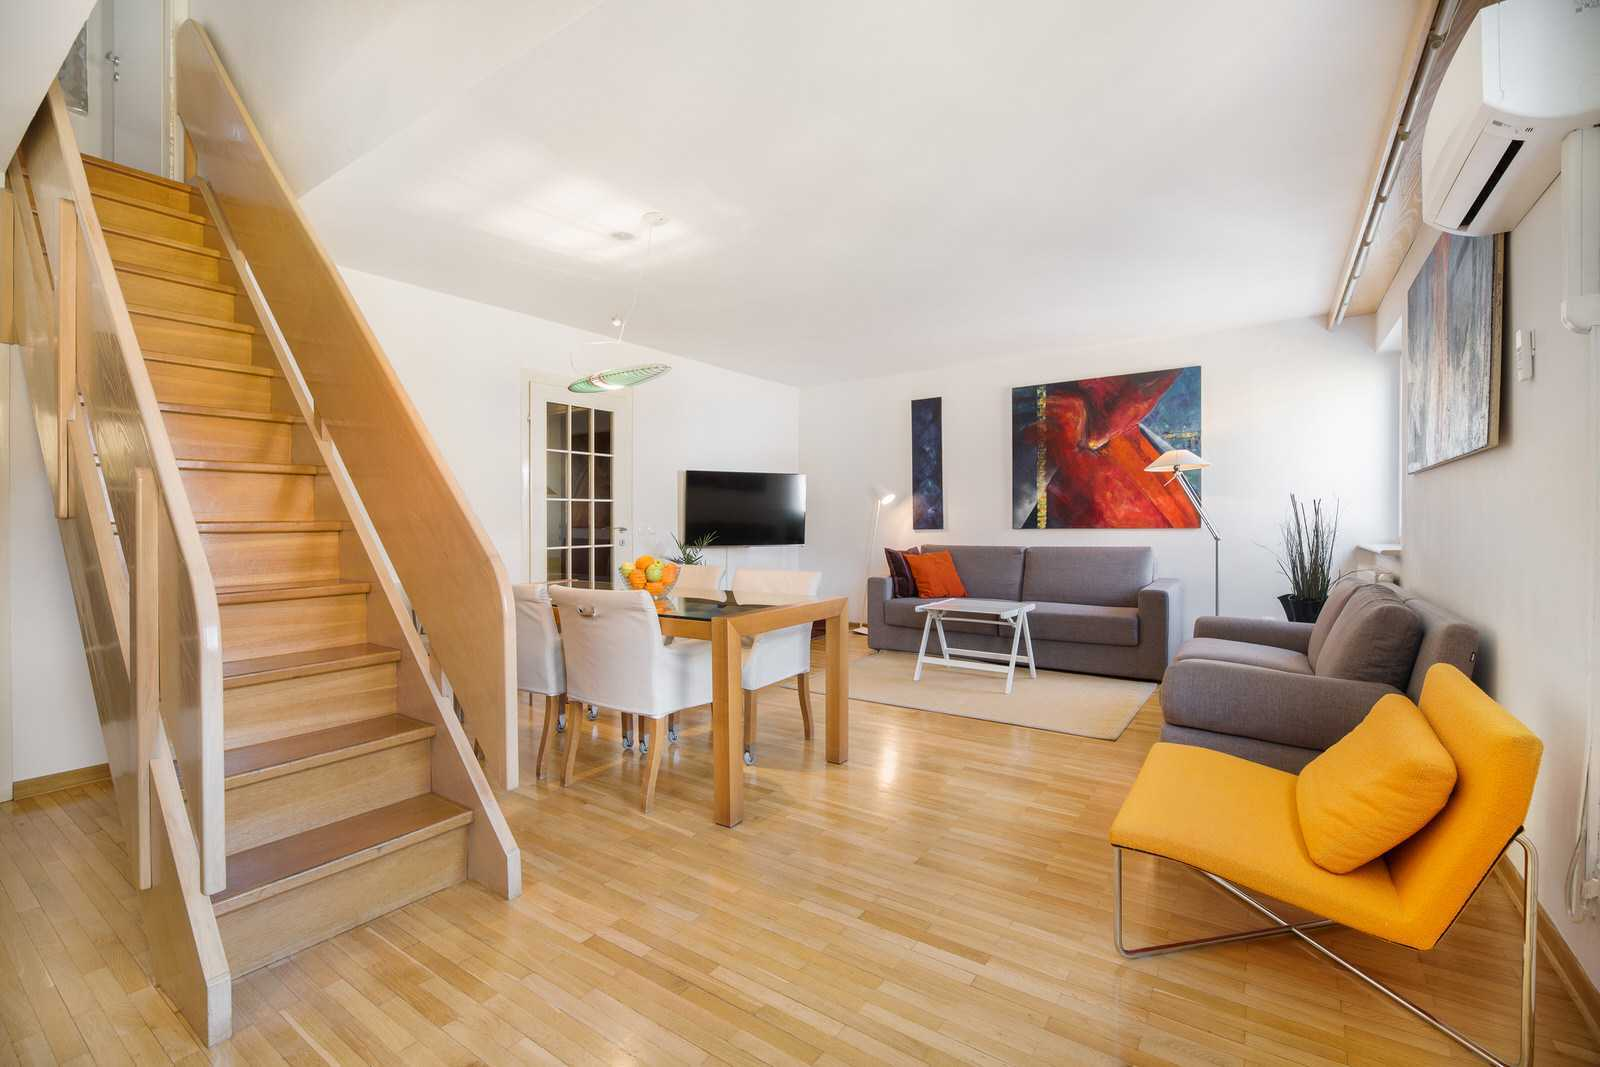 Ljubljana rental apartment Dalmatinova - open space living area with stairs leading upstairs to the master bedroom and sleeping niche.